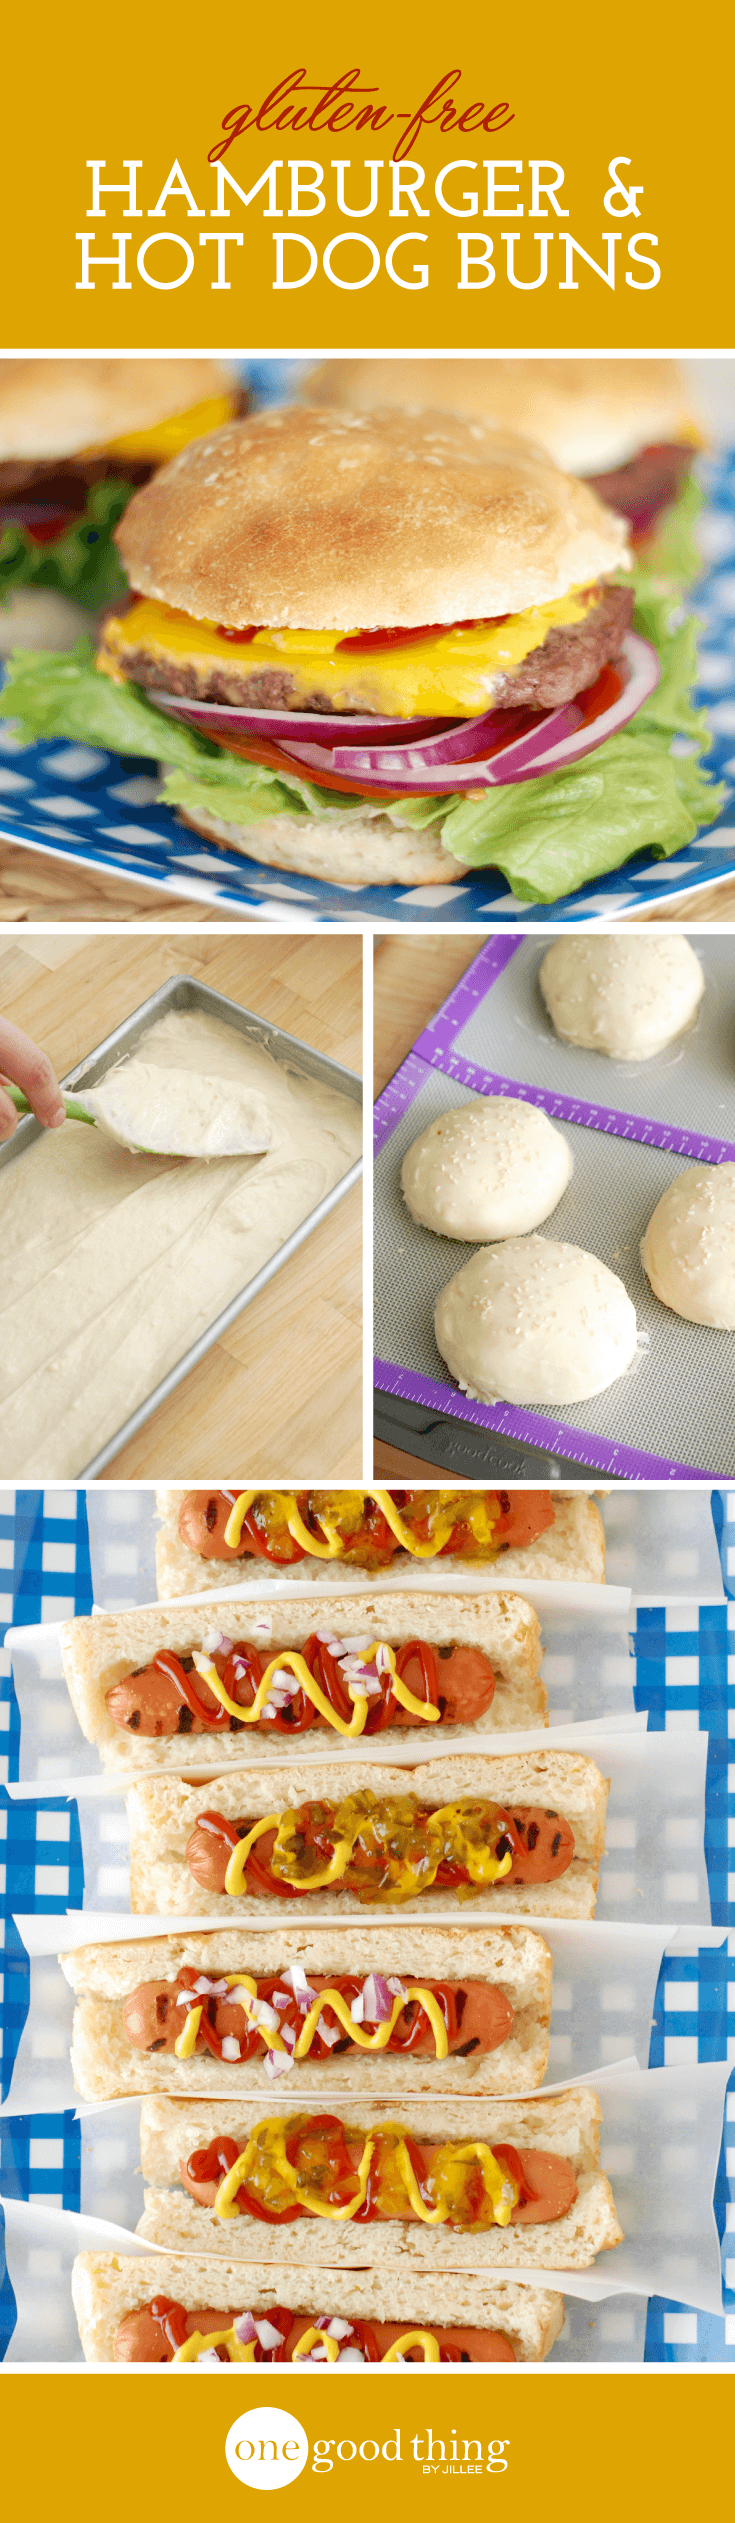 Gluten-Free Hamburger and Hot Dog Buns